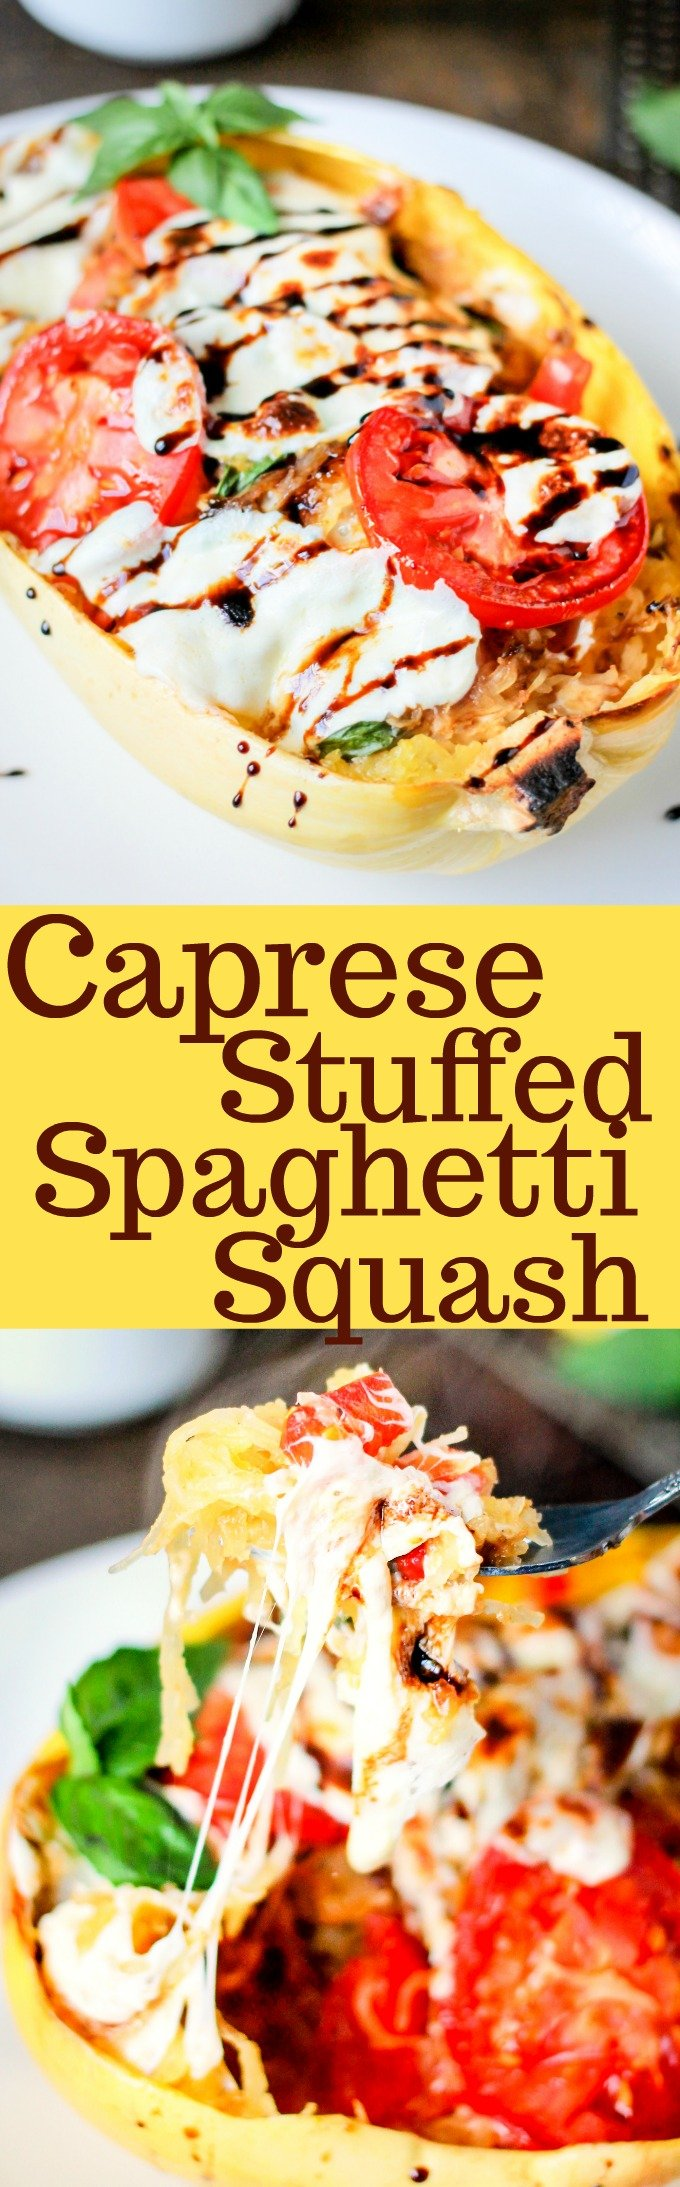 Caprese Stuffed Spaghetti Squash is loaded with fresh mozzarella, tomatoes, basil, and then topped with a delicious balsamic glaze! Perfect healthy dinner!